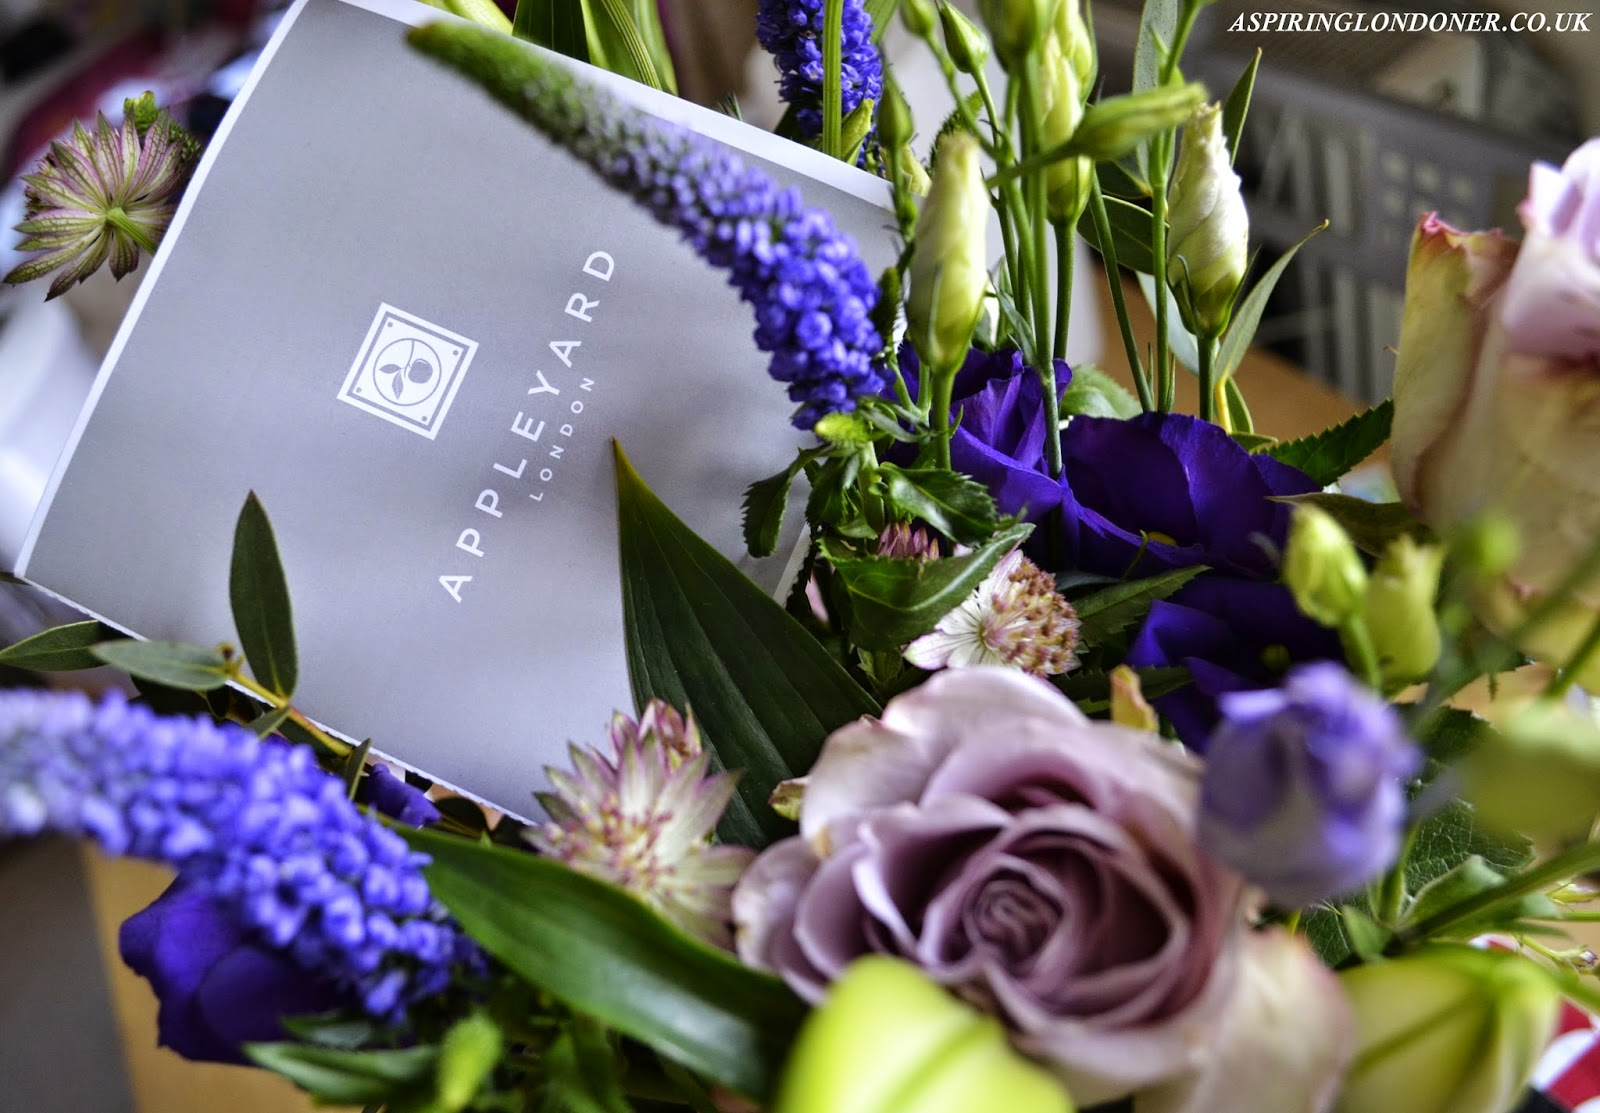 Appleyards London Liberty Luxury Bouquet Review - Aspiring Londoner